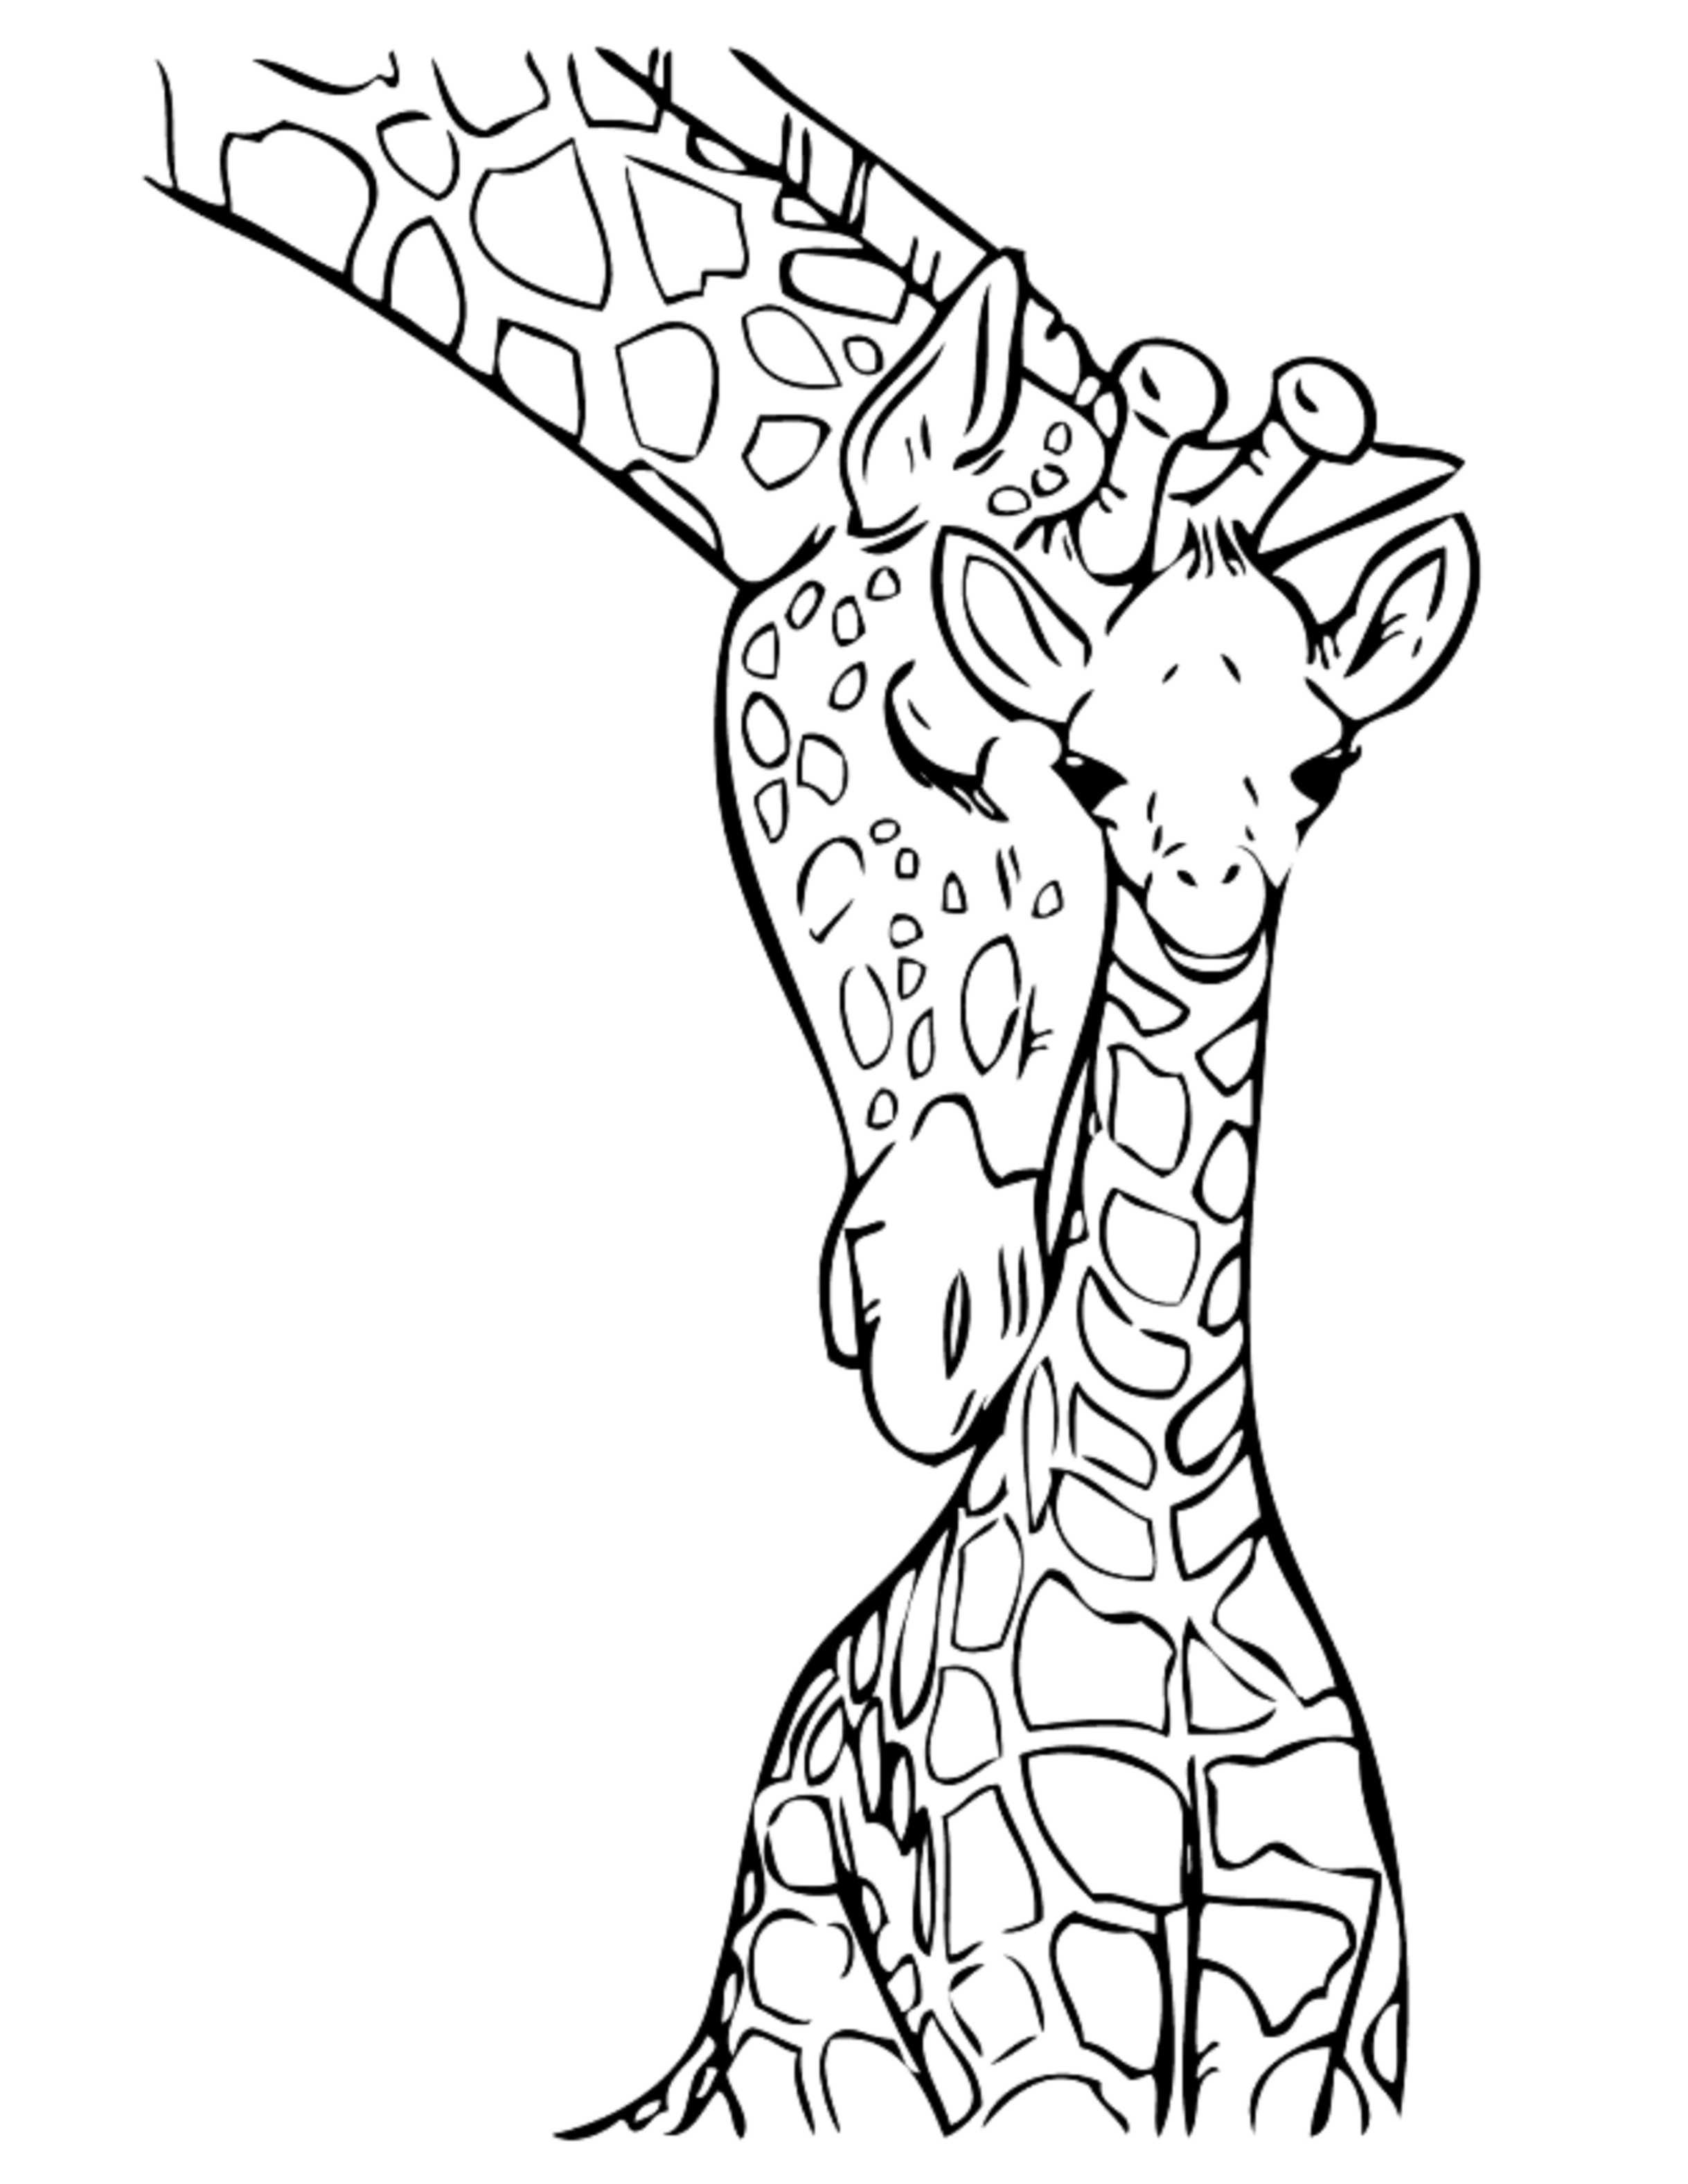 Giraffe Coloring Pages Printable Animal Coloring Pages Giraffe